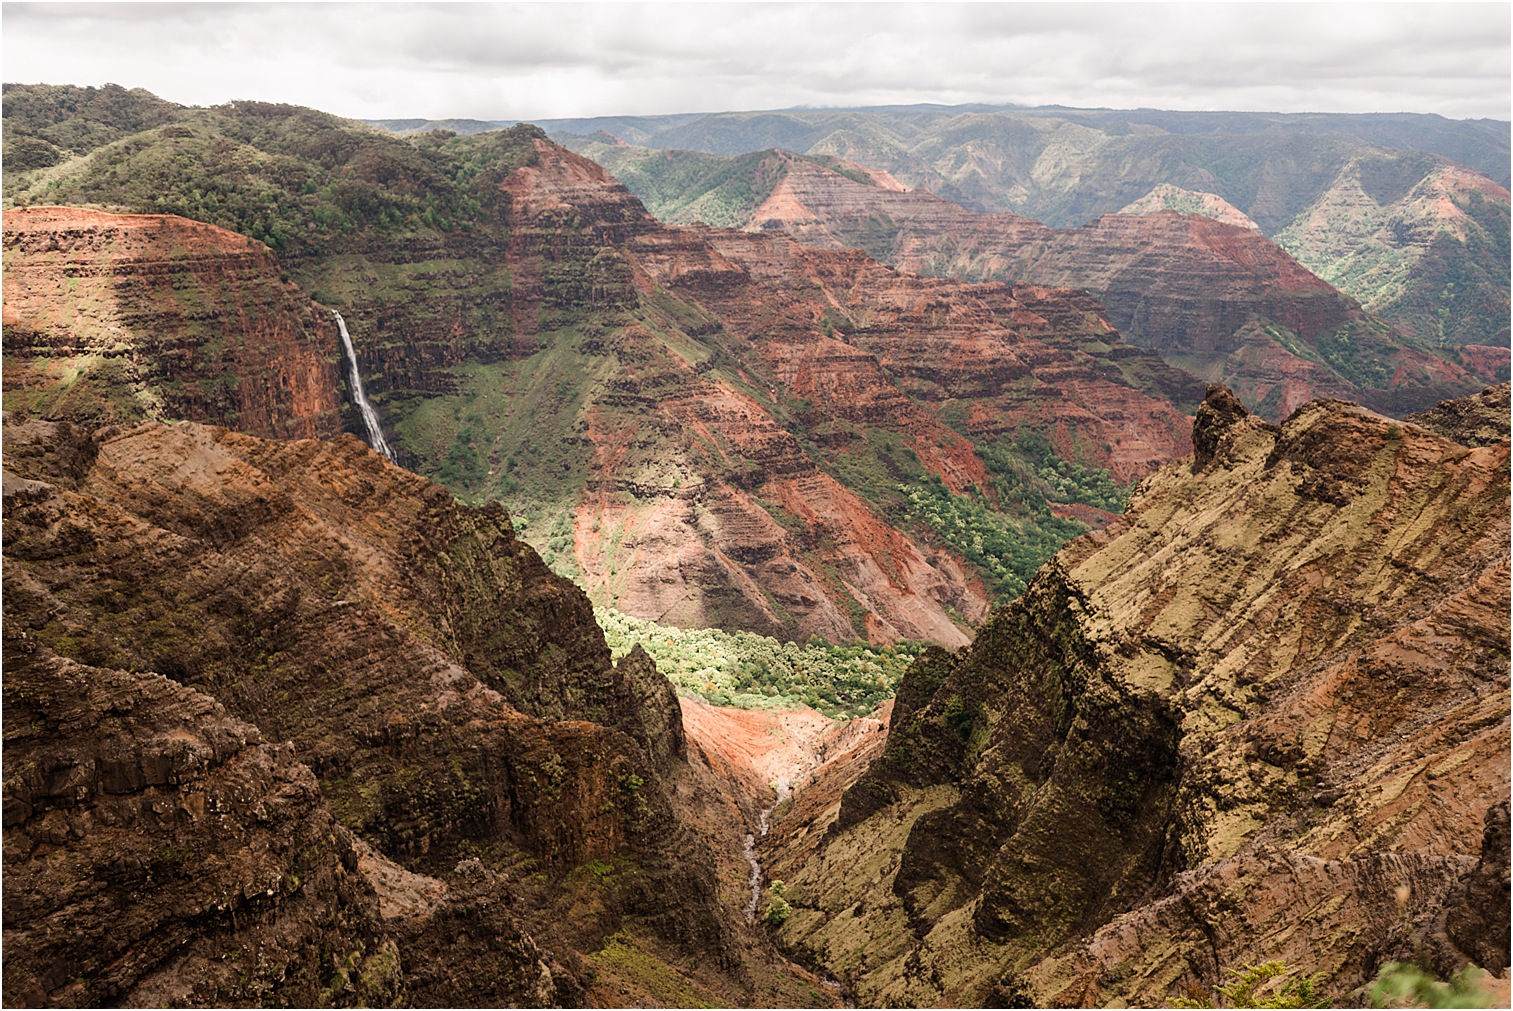 Overlooking Waimea Canyon. Image by Forthright Photo